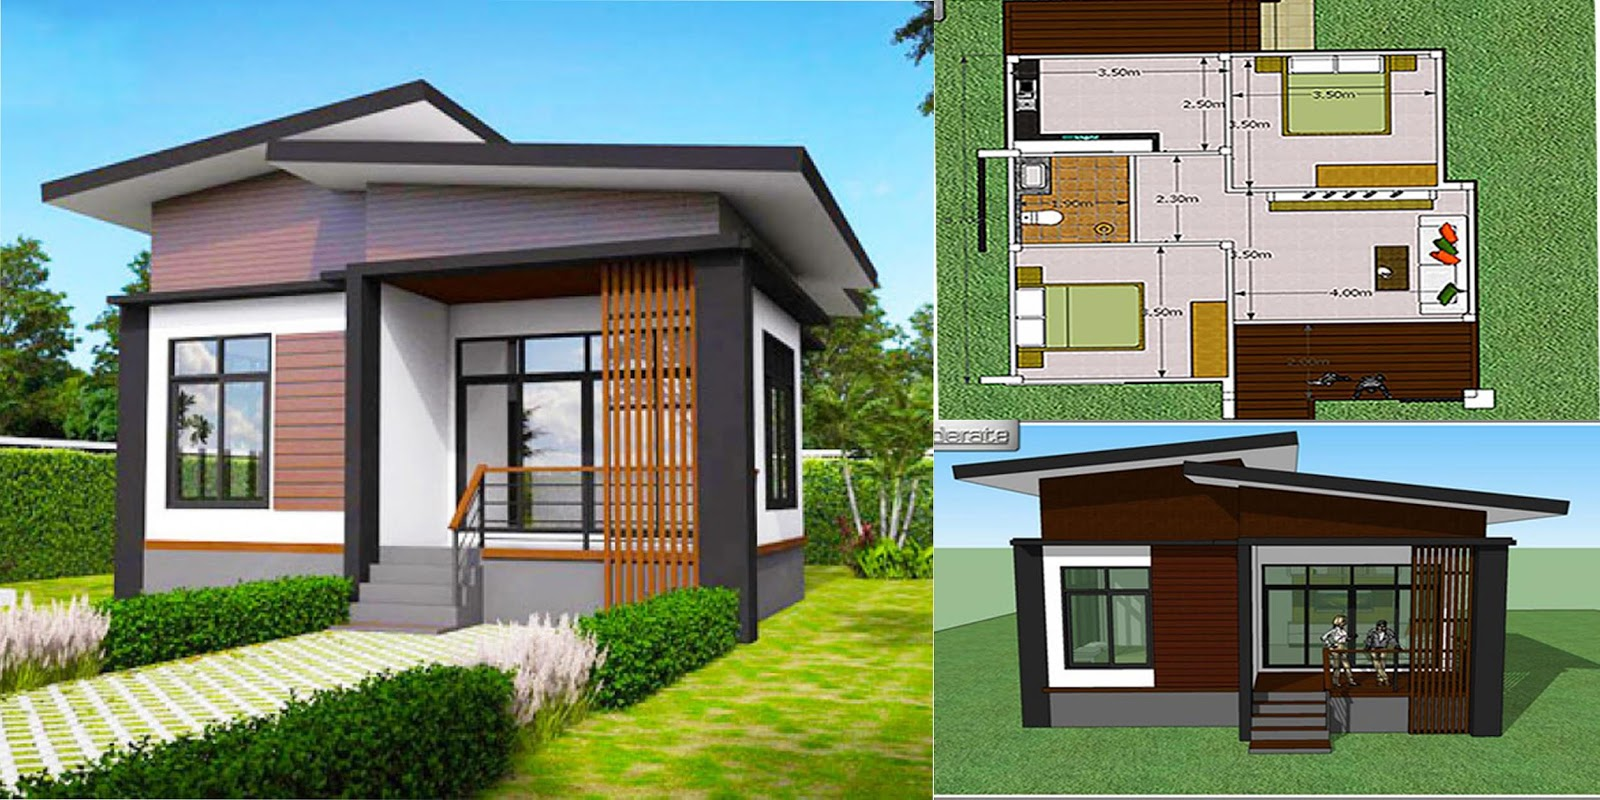 Elevated Modern Single Storey House | Engineering Discoveries